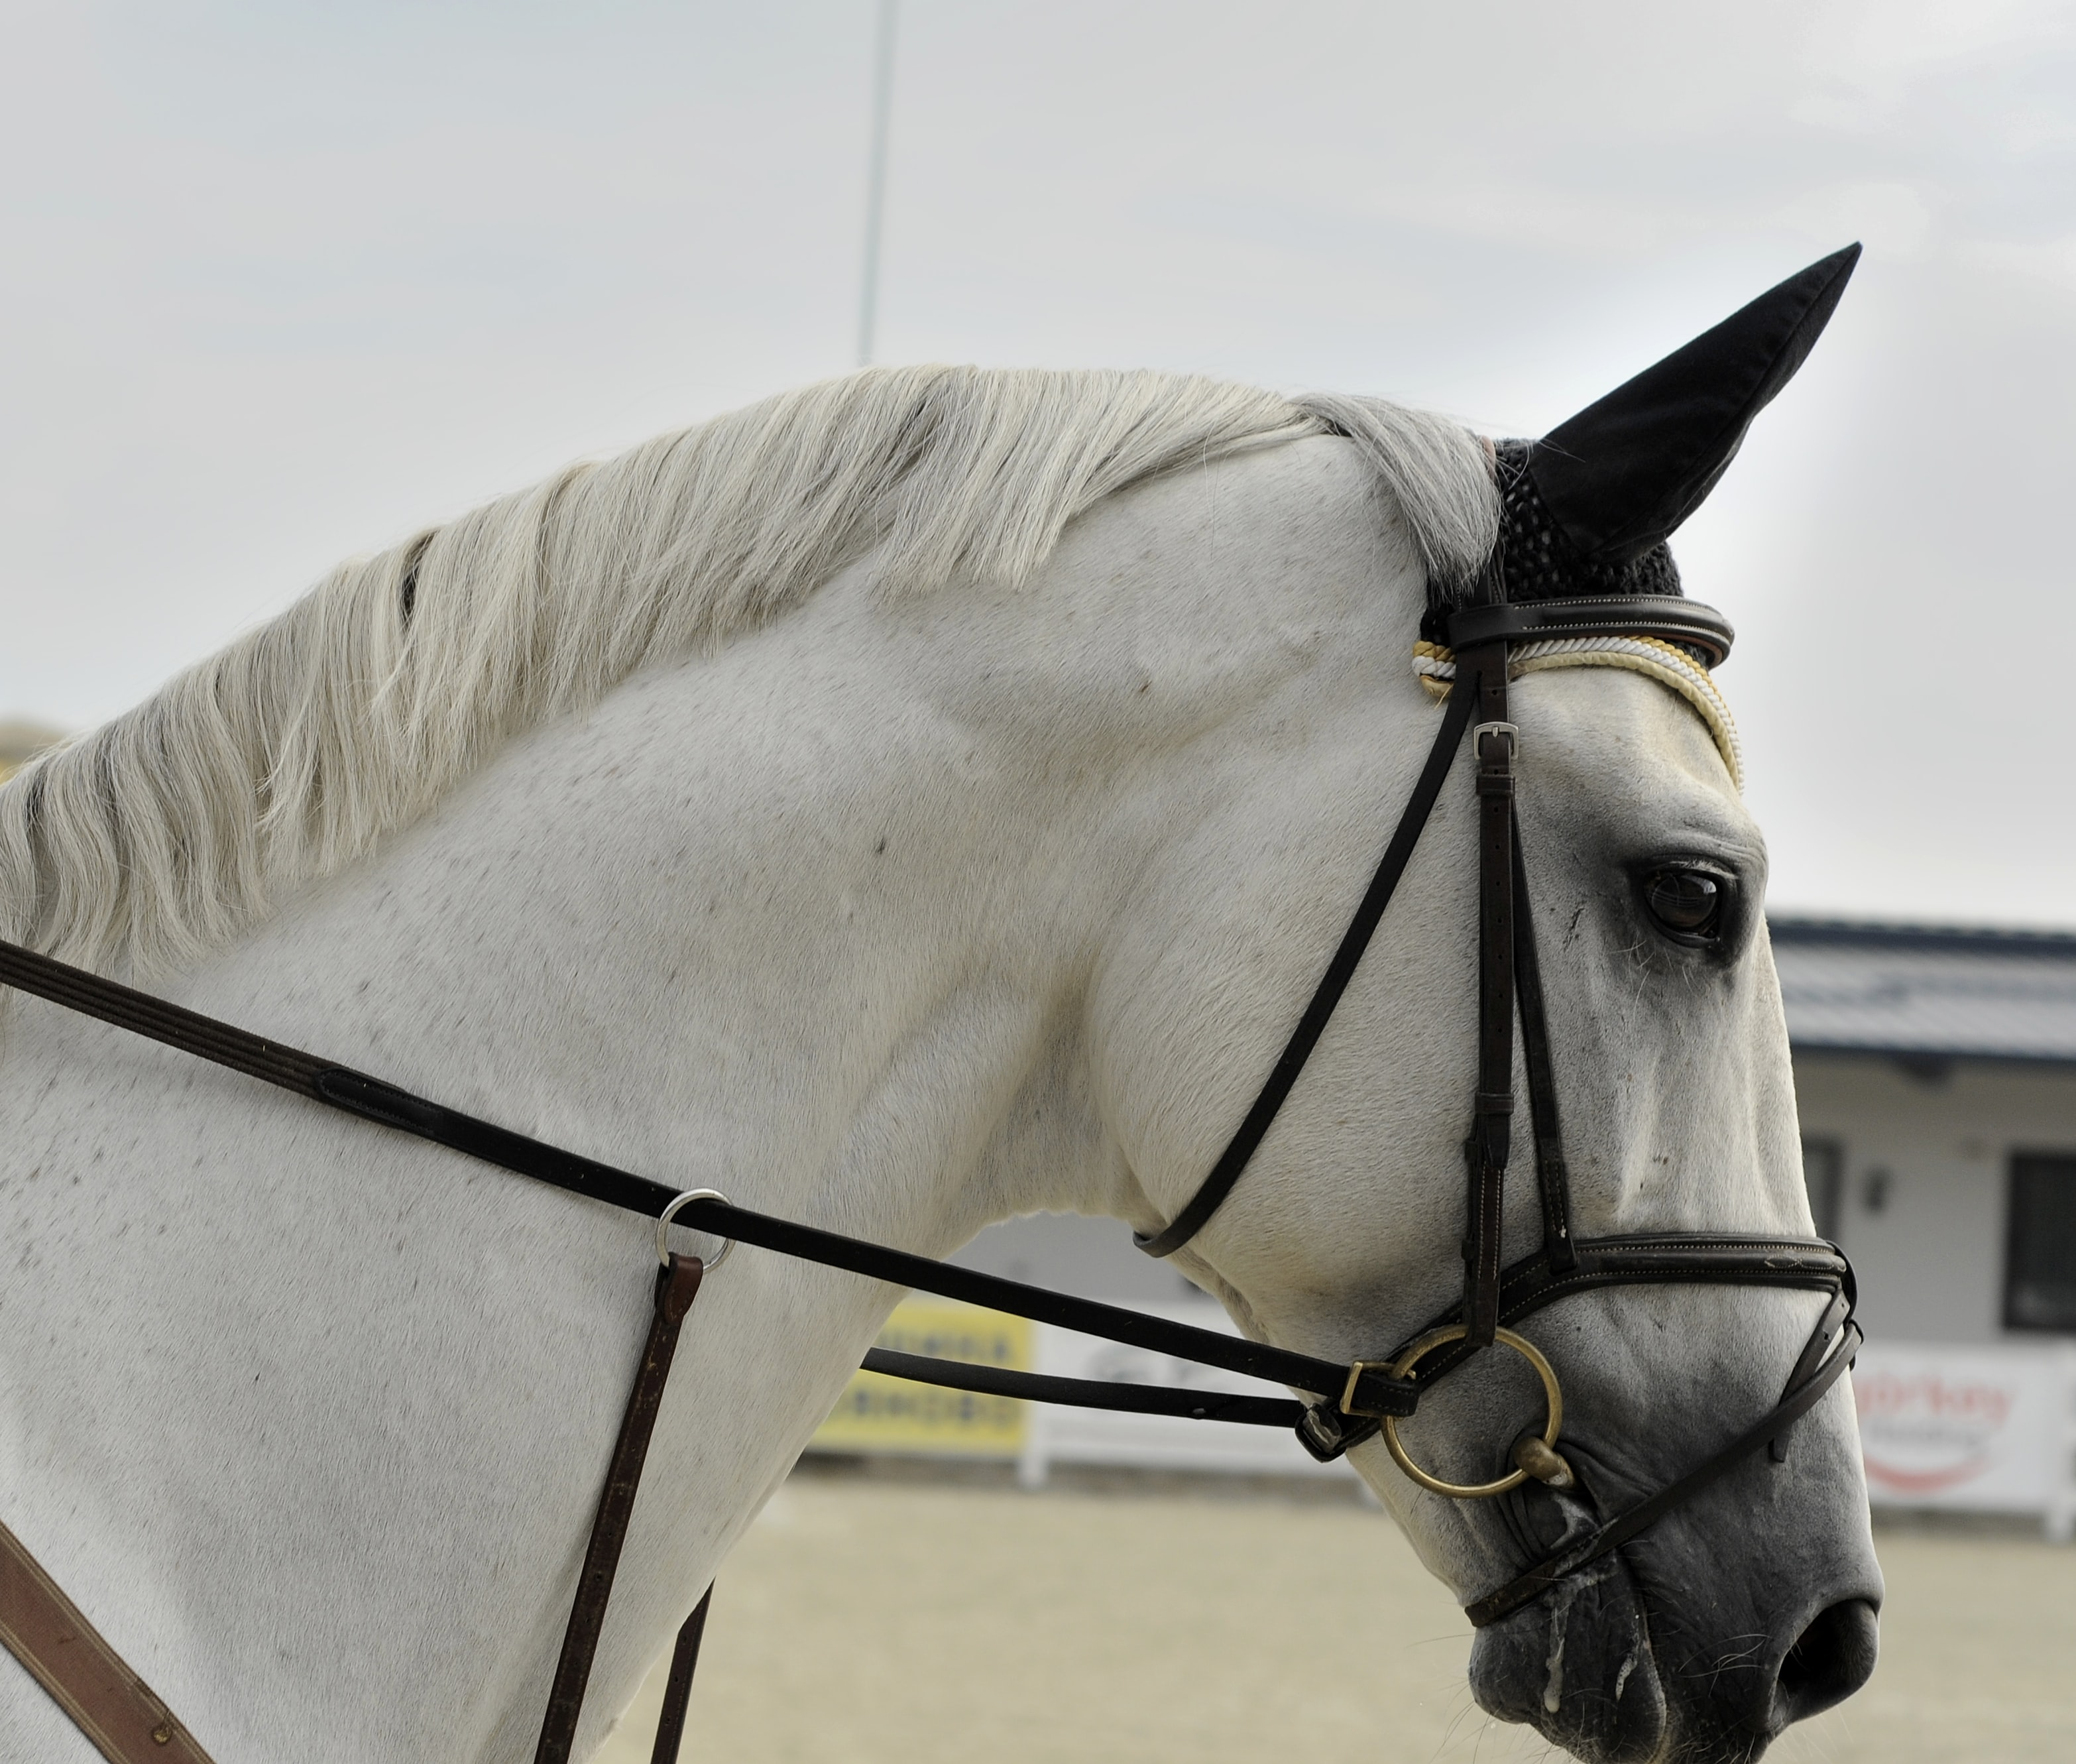 A close-up of the side of a gray horse's head with a bridle and an ear net